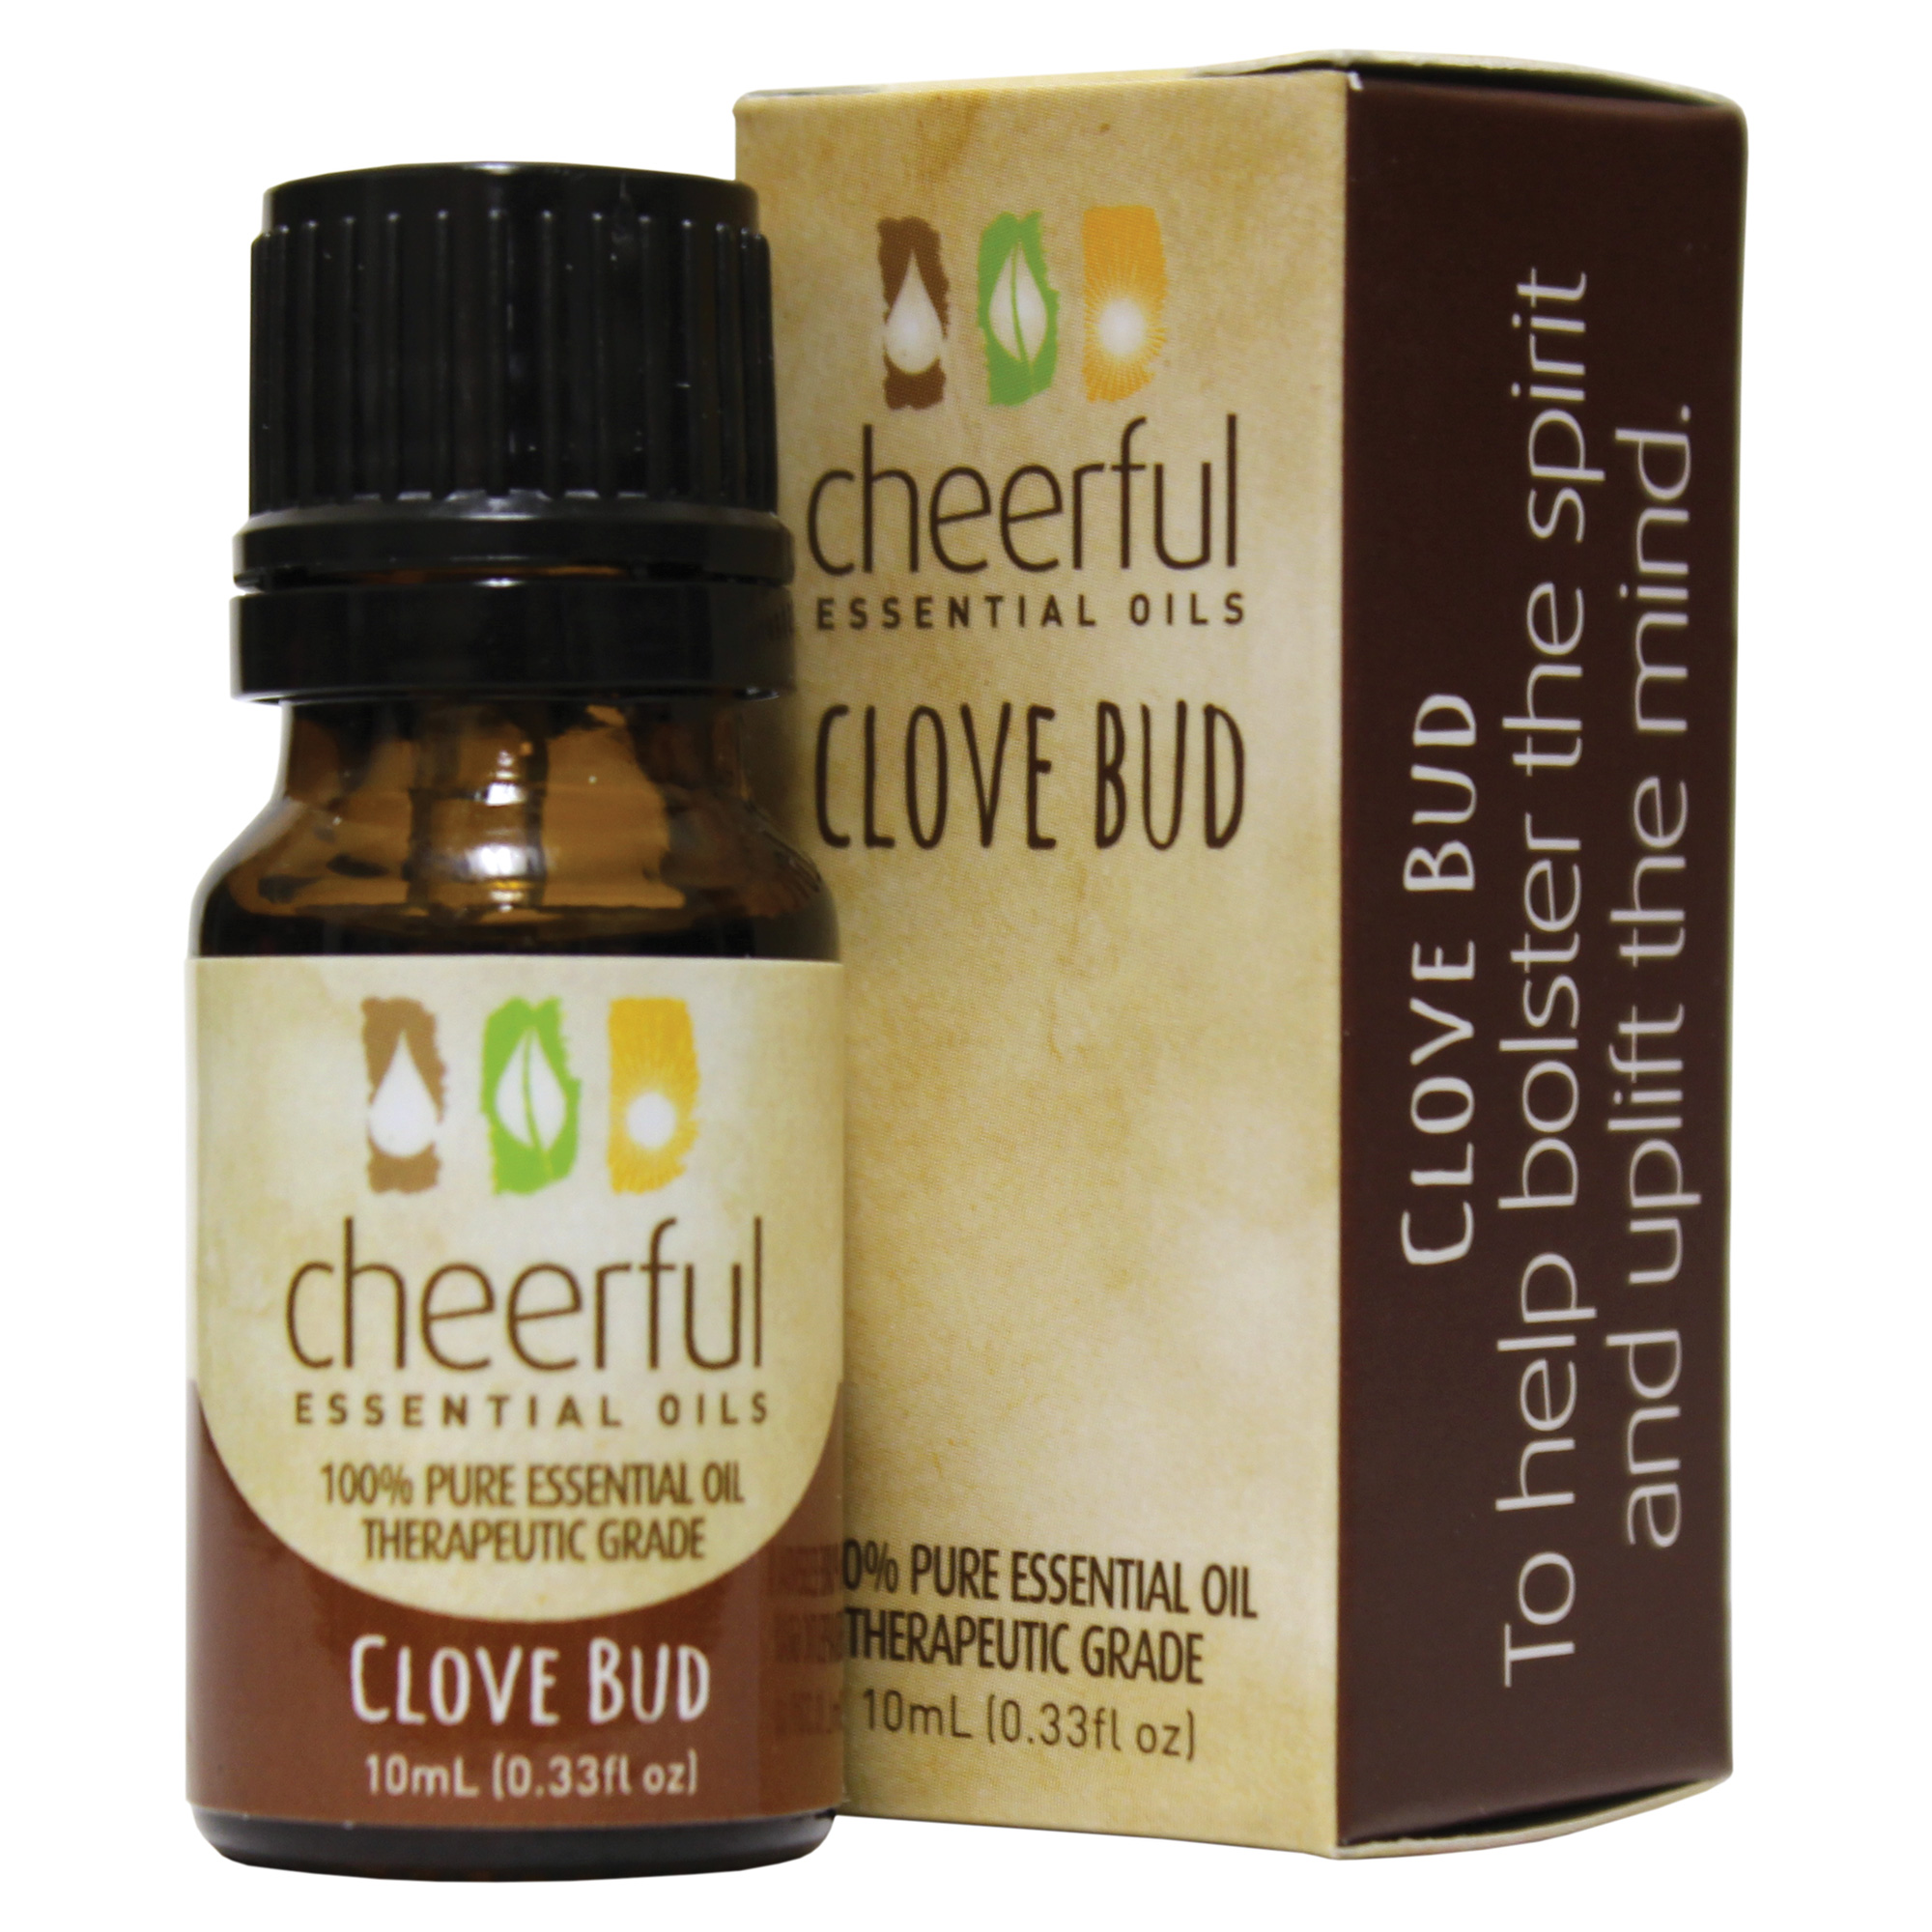 CLOVE BUD ESSENTIAL OIL 10 ML UPC# 674623018188